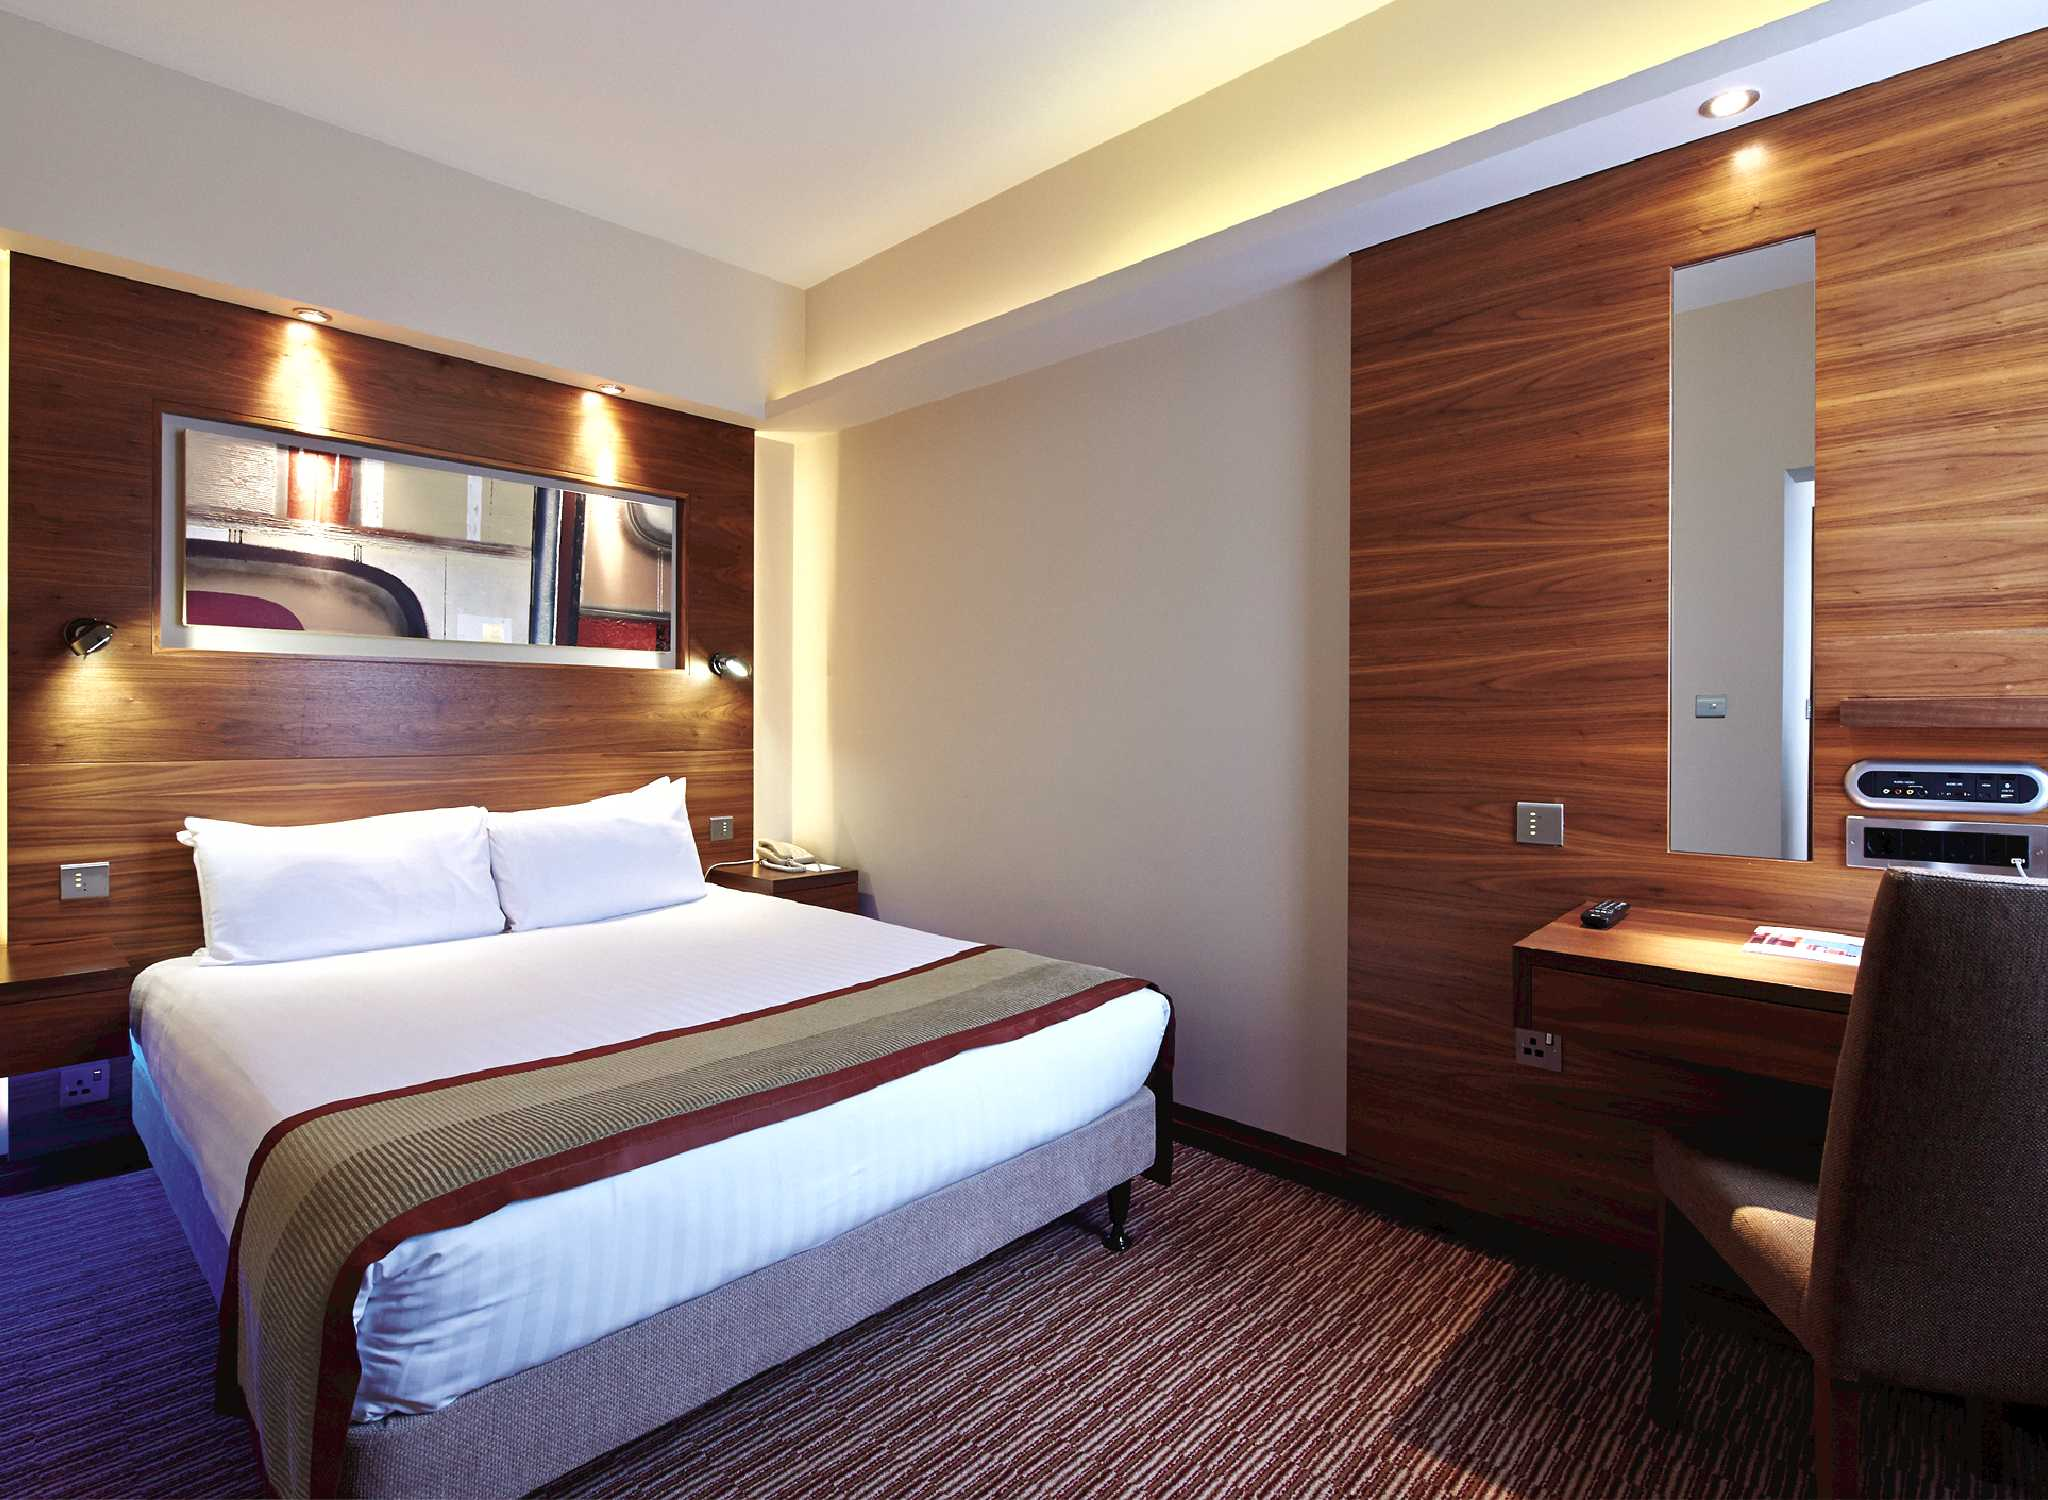 Htel doubletree by hilton london kensington royaumeuni for Chambre london